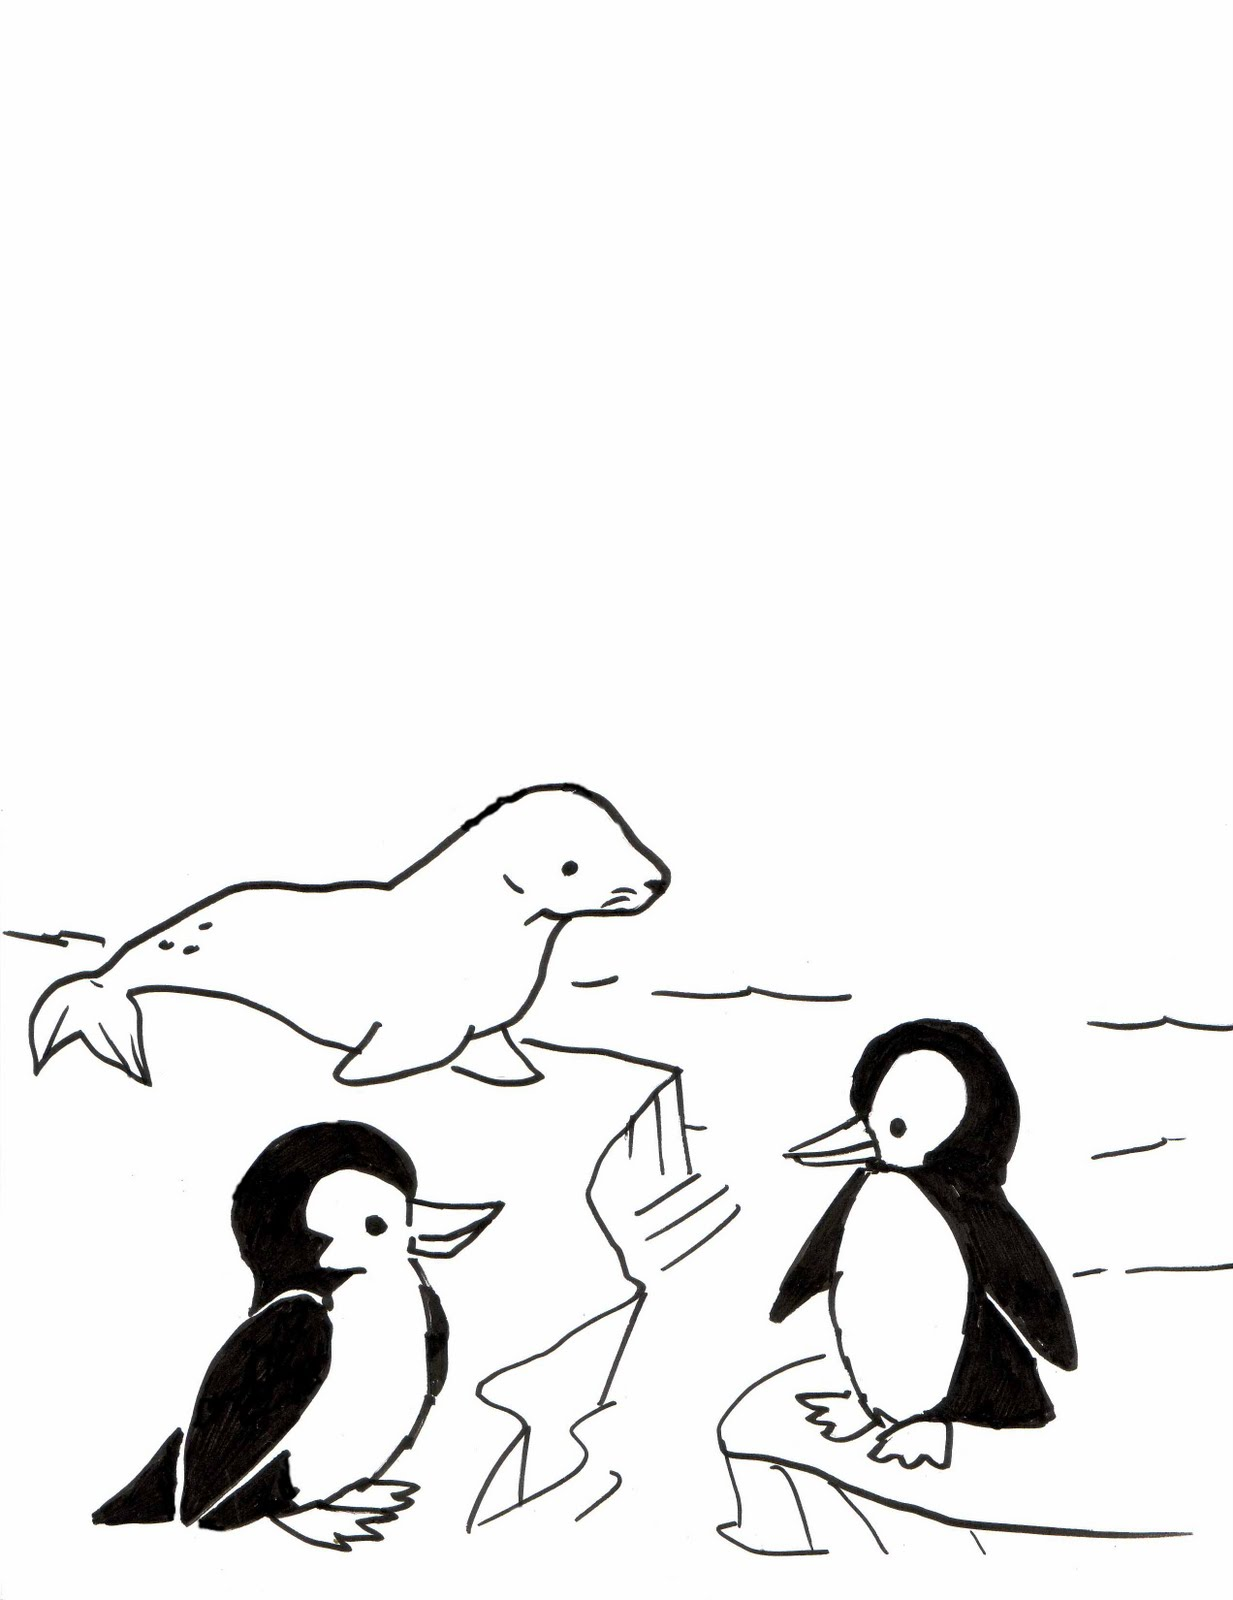 1233x1600 Kid Sketches Penguin And Seal Sketching Activity For Summer Art Camp